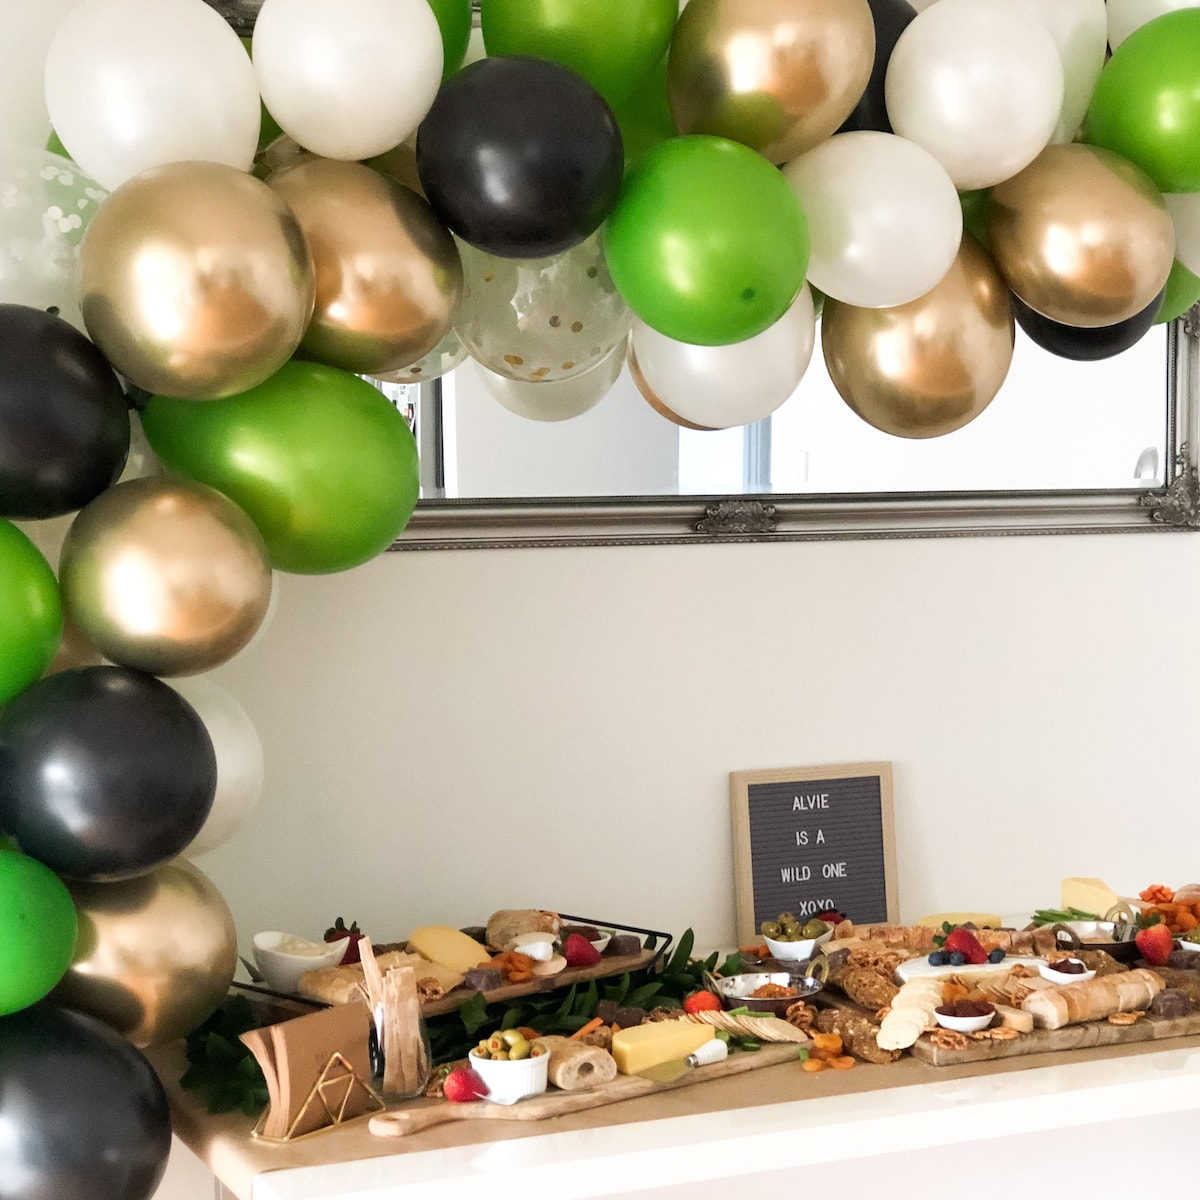 Wild one grazing table with balloons